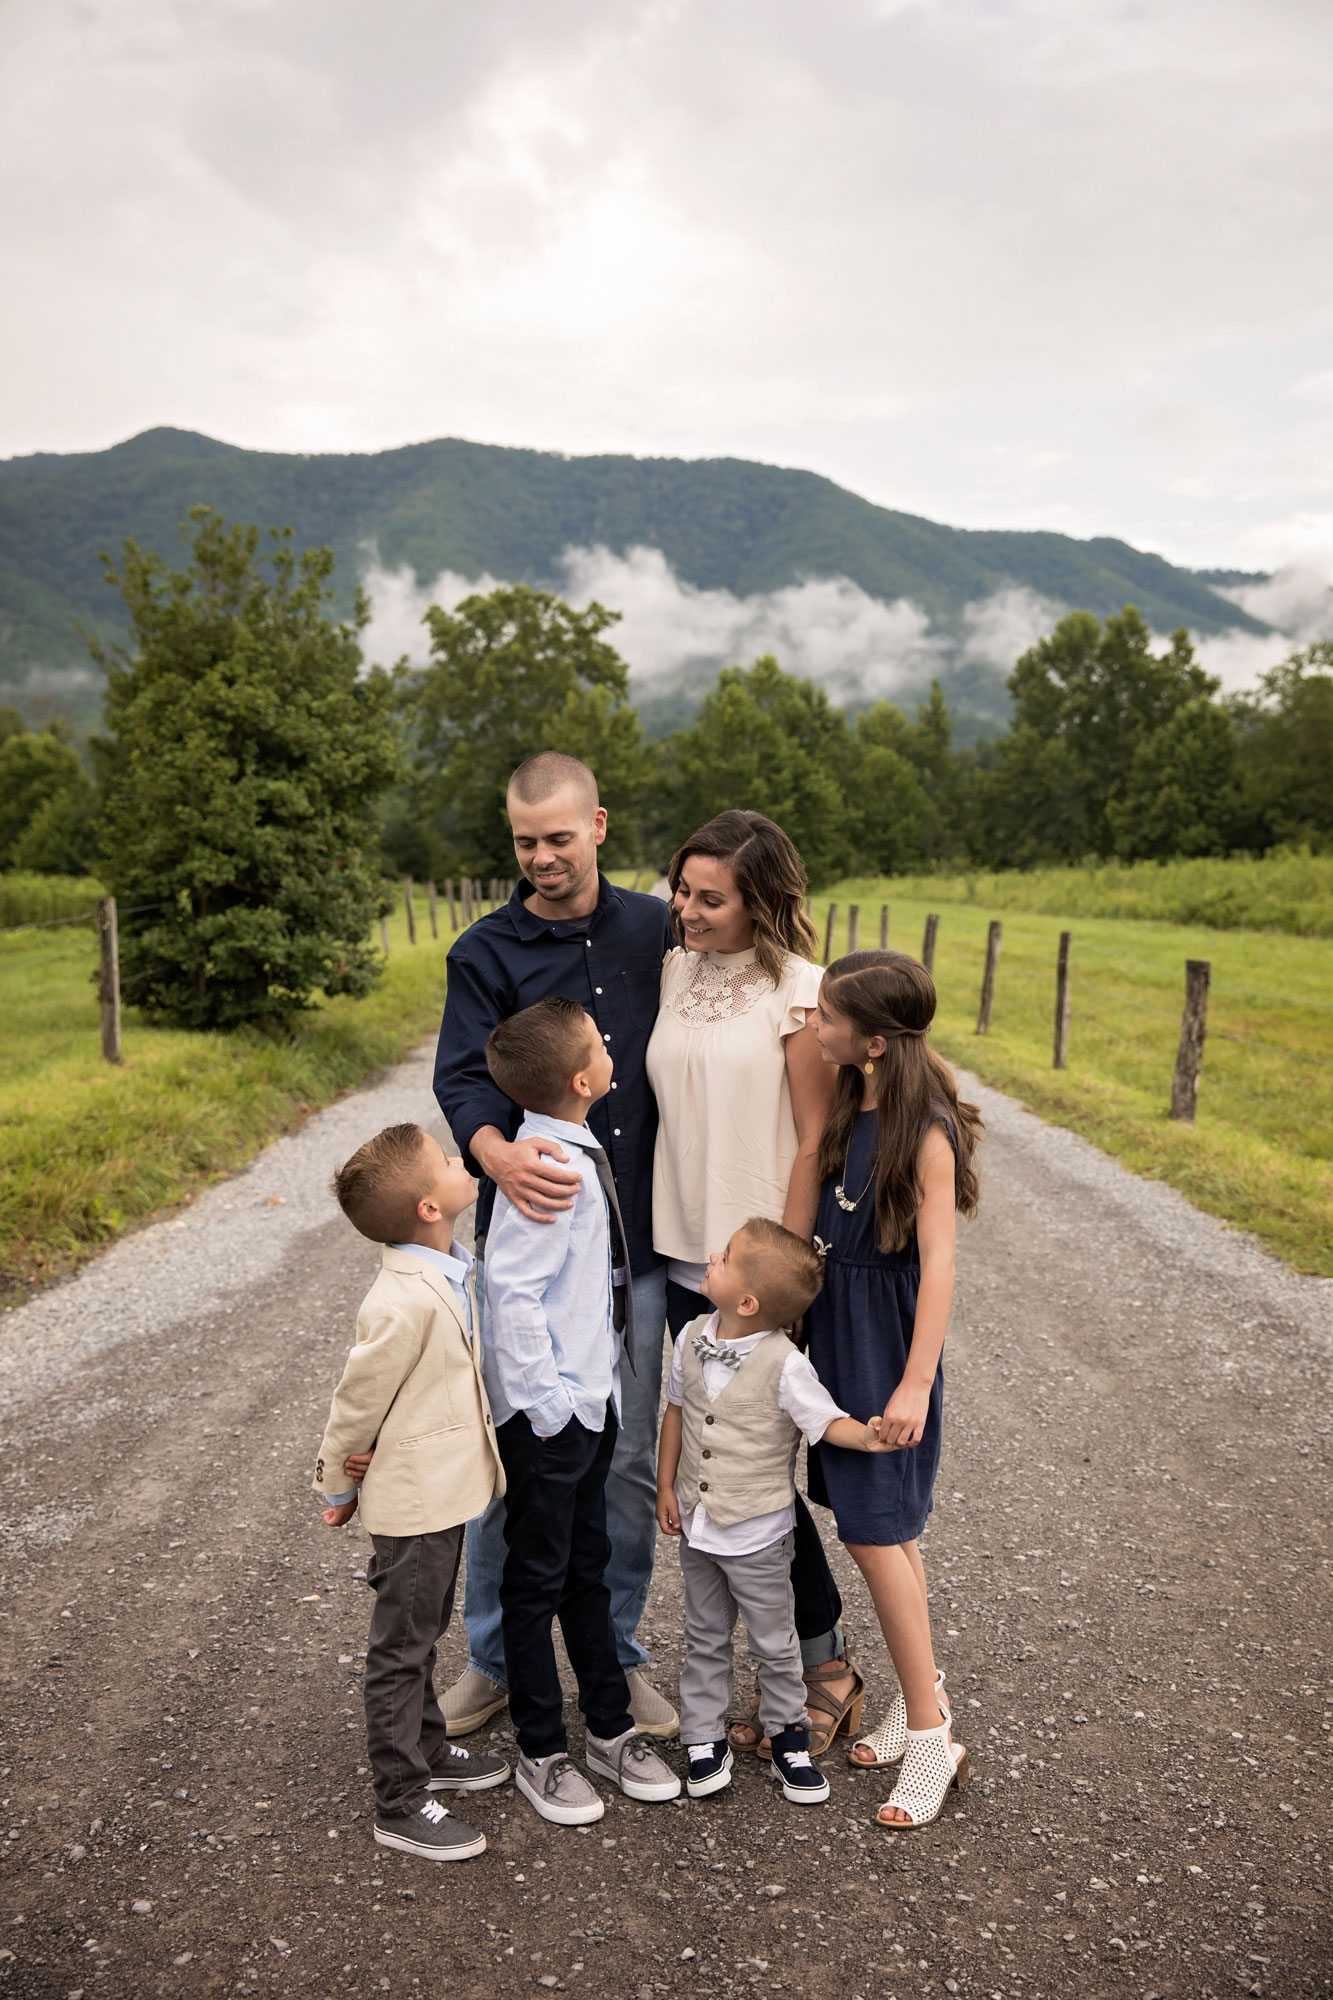 cades-cove-family-picture-photographers.jpg